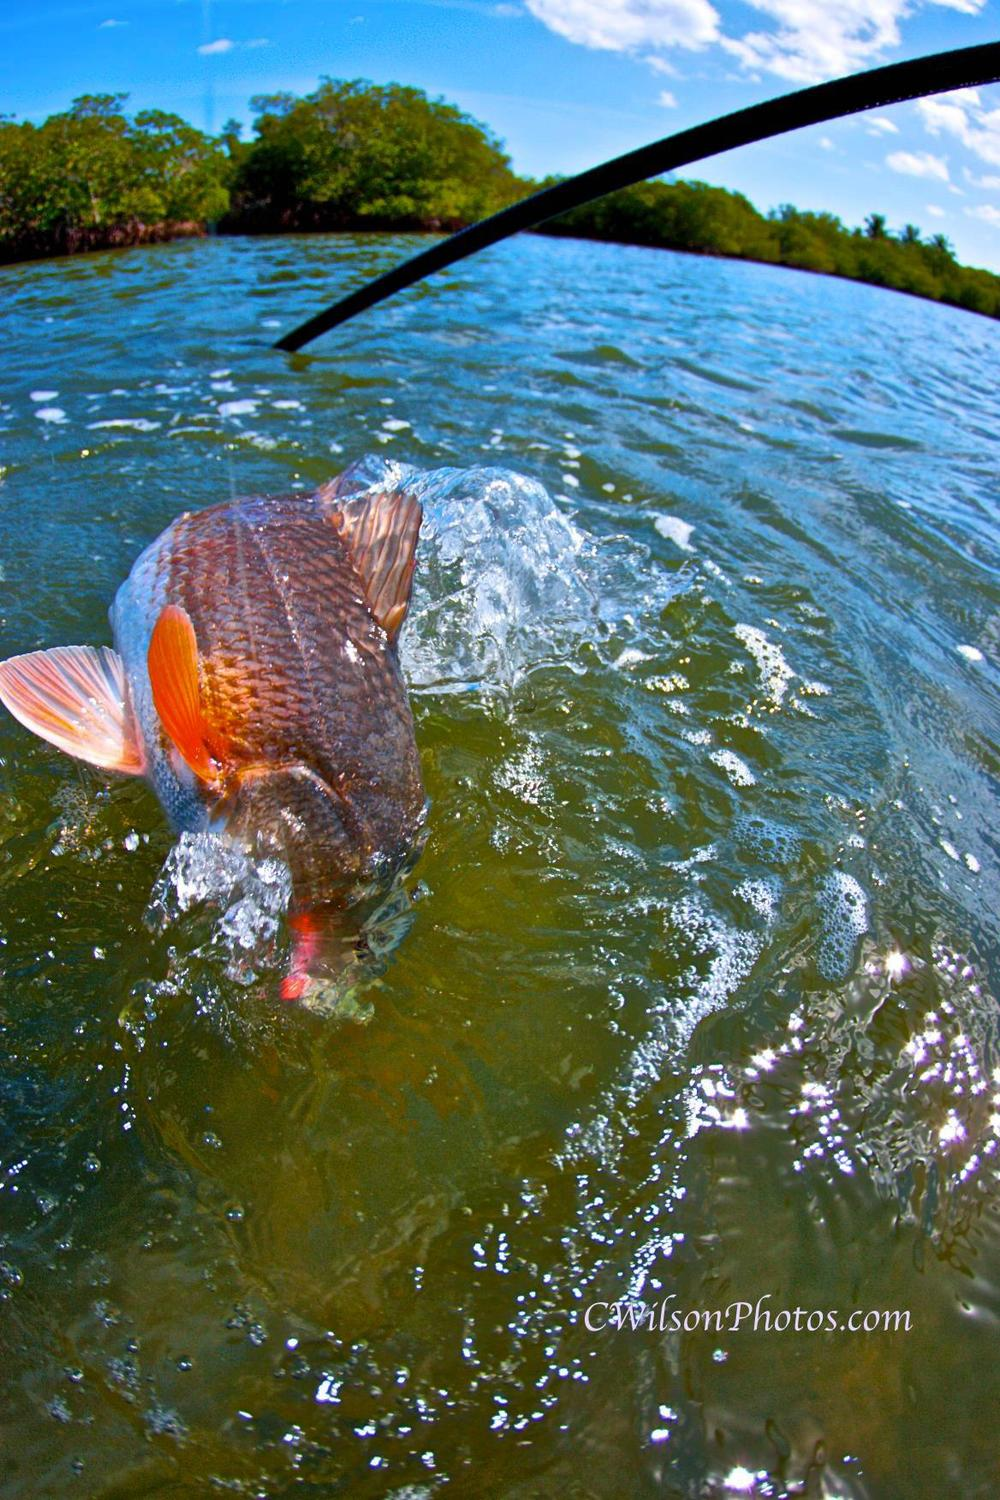 everglades-redfish-7.jpg